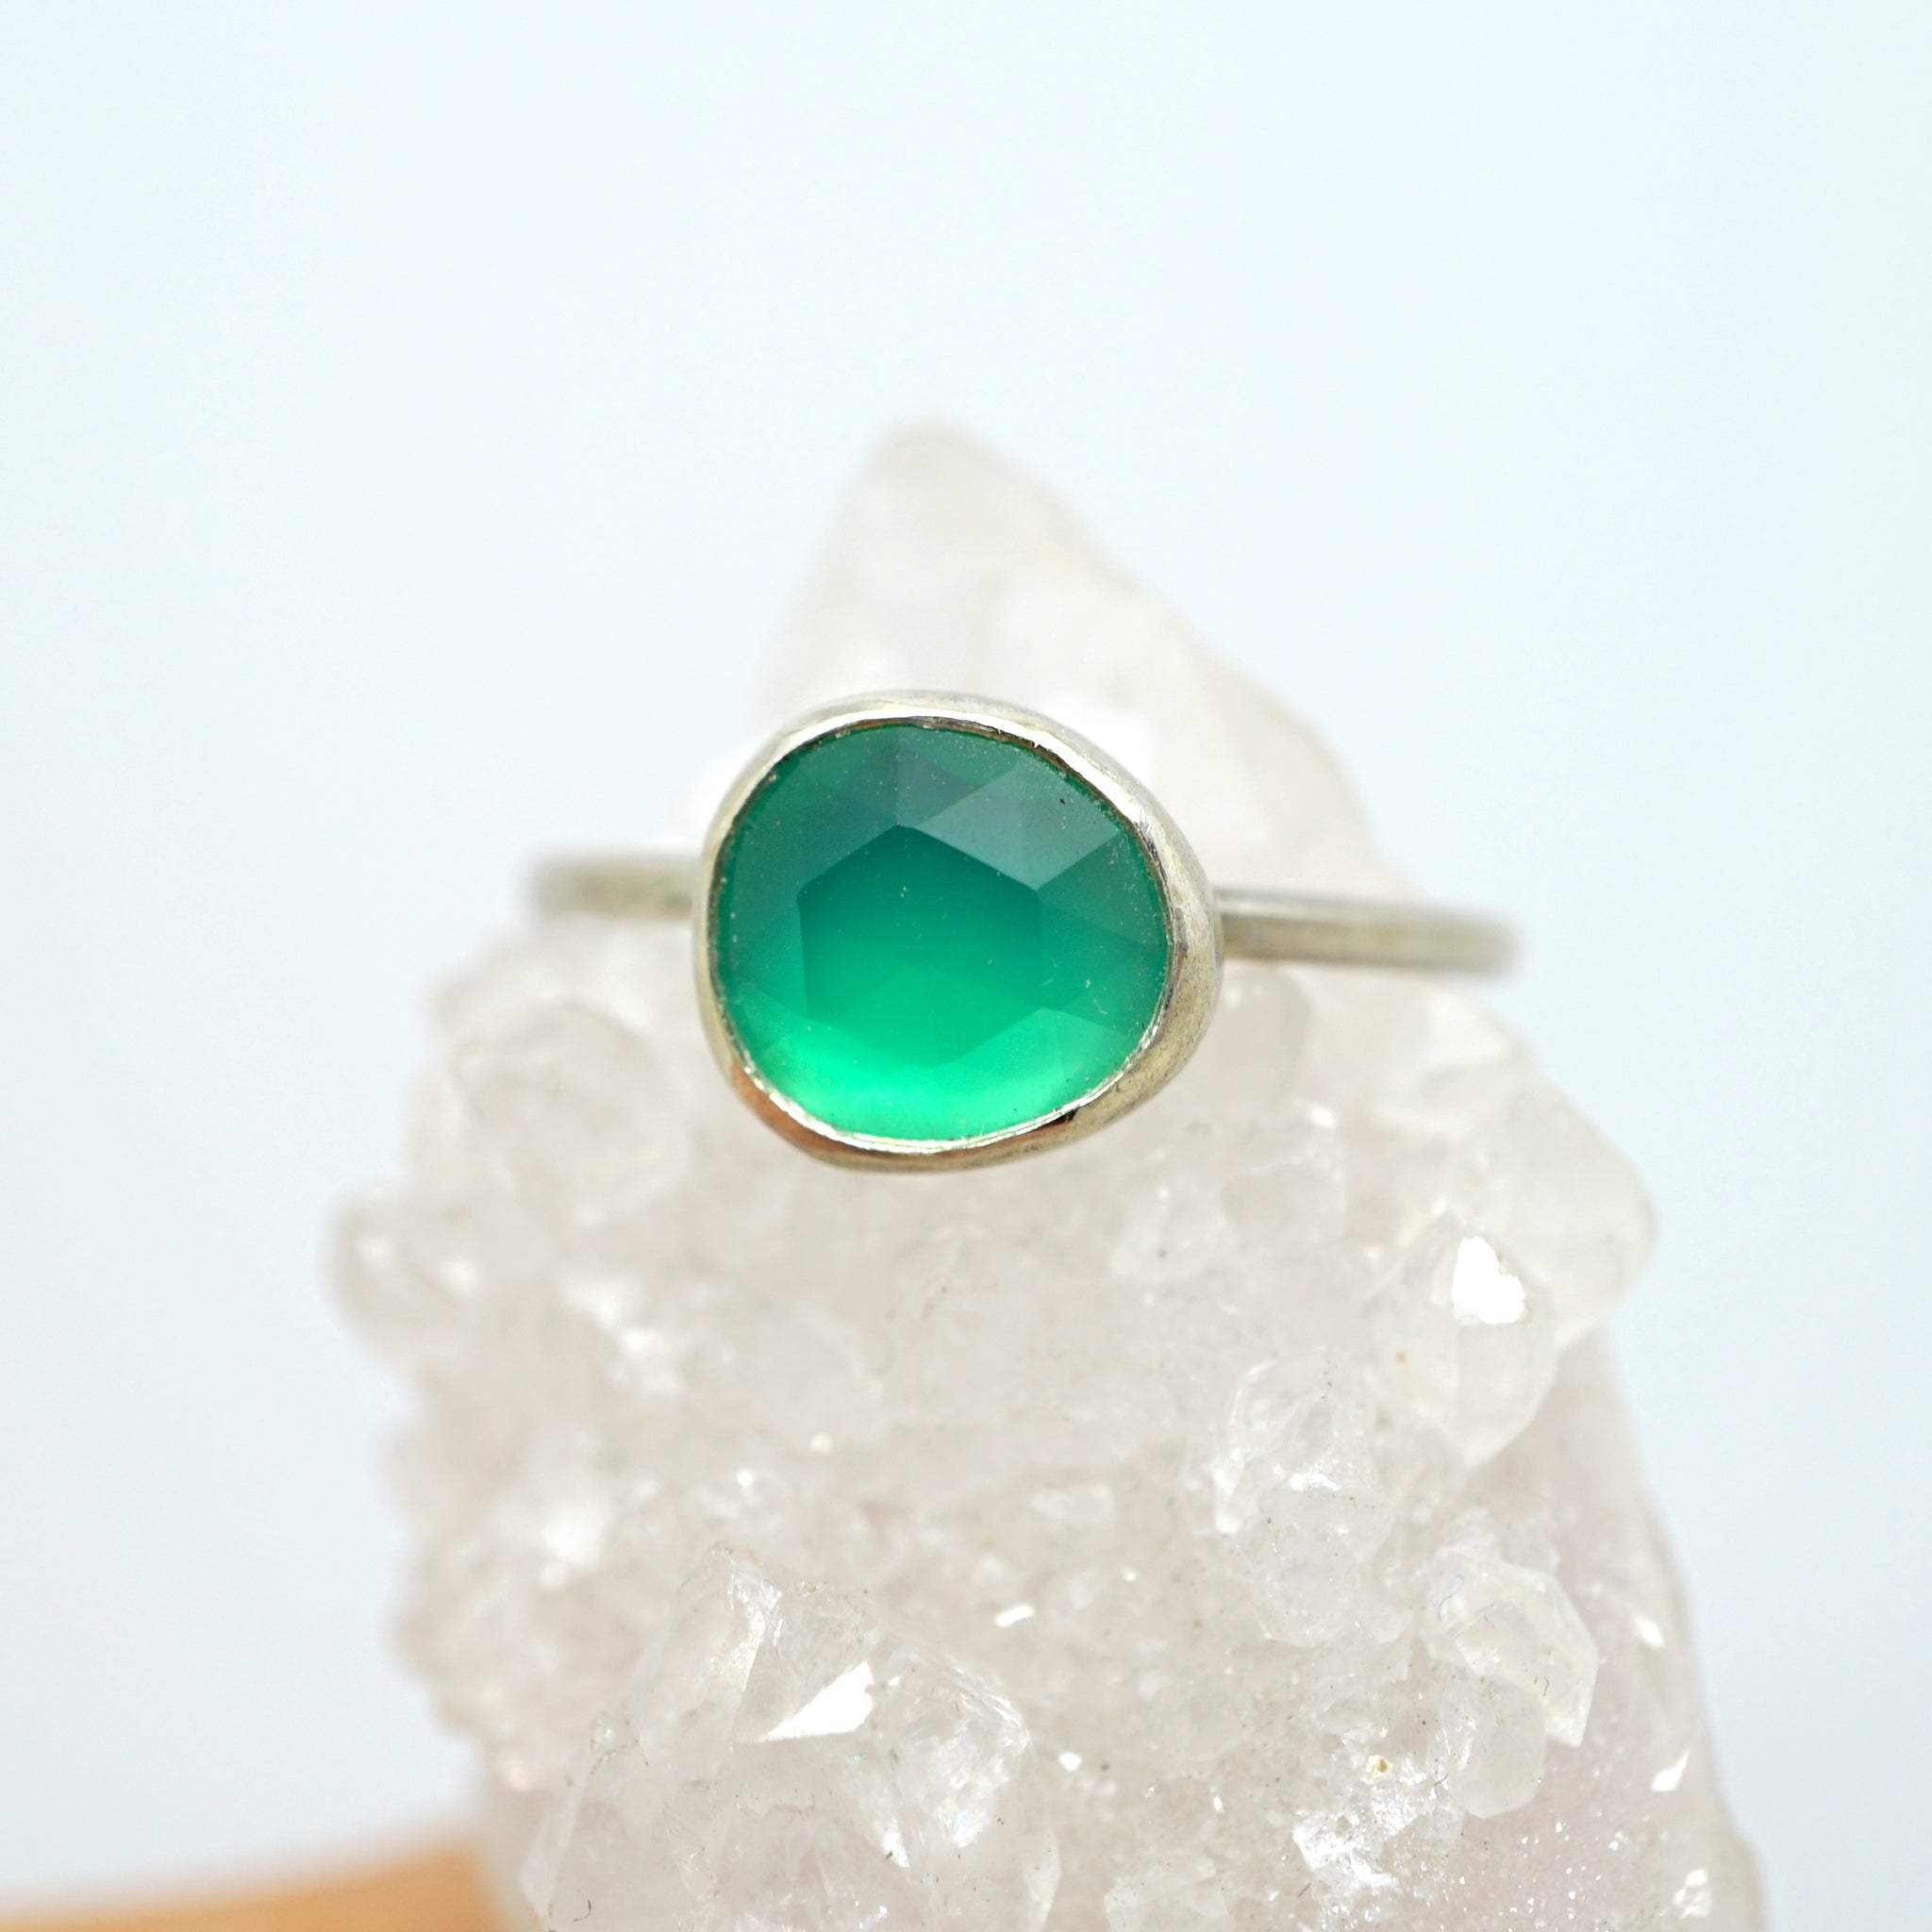 Green chalcedony solitaire ring